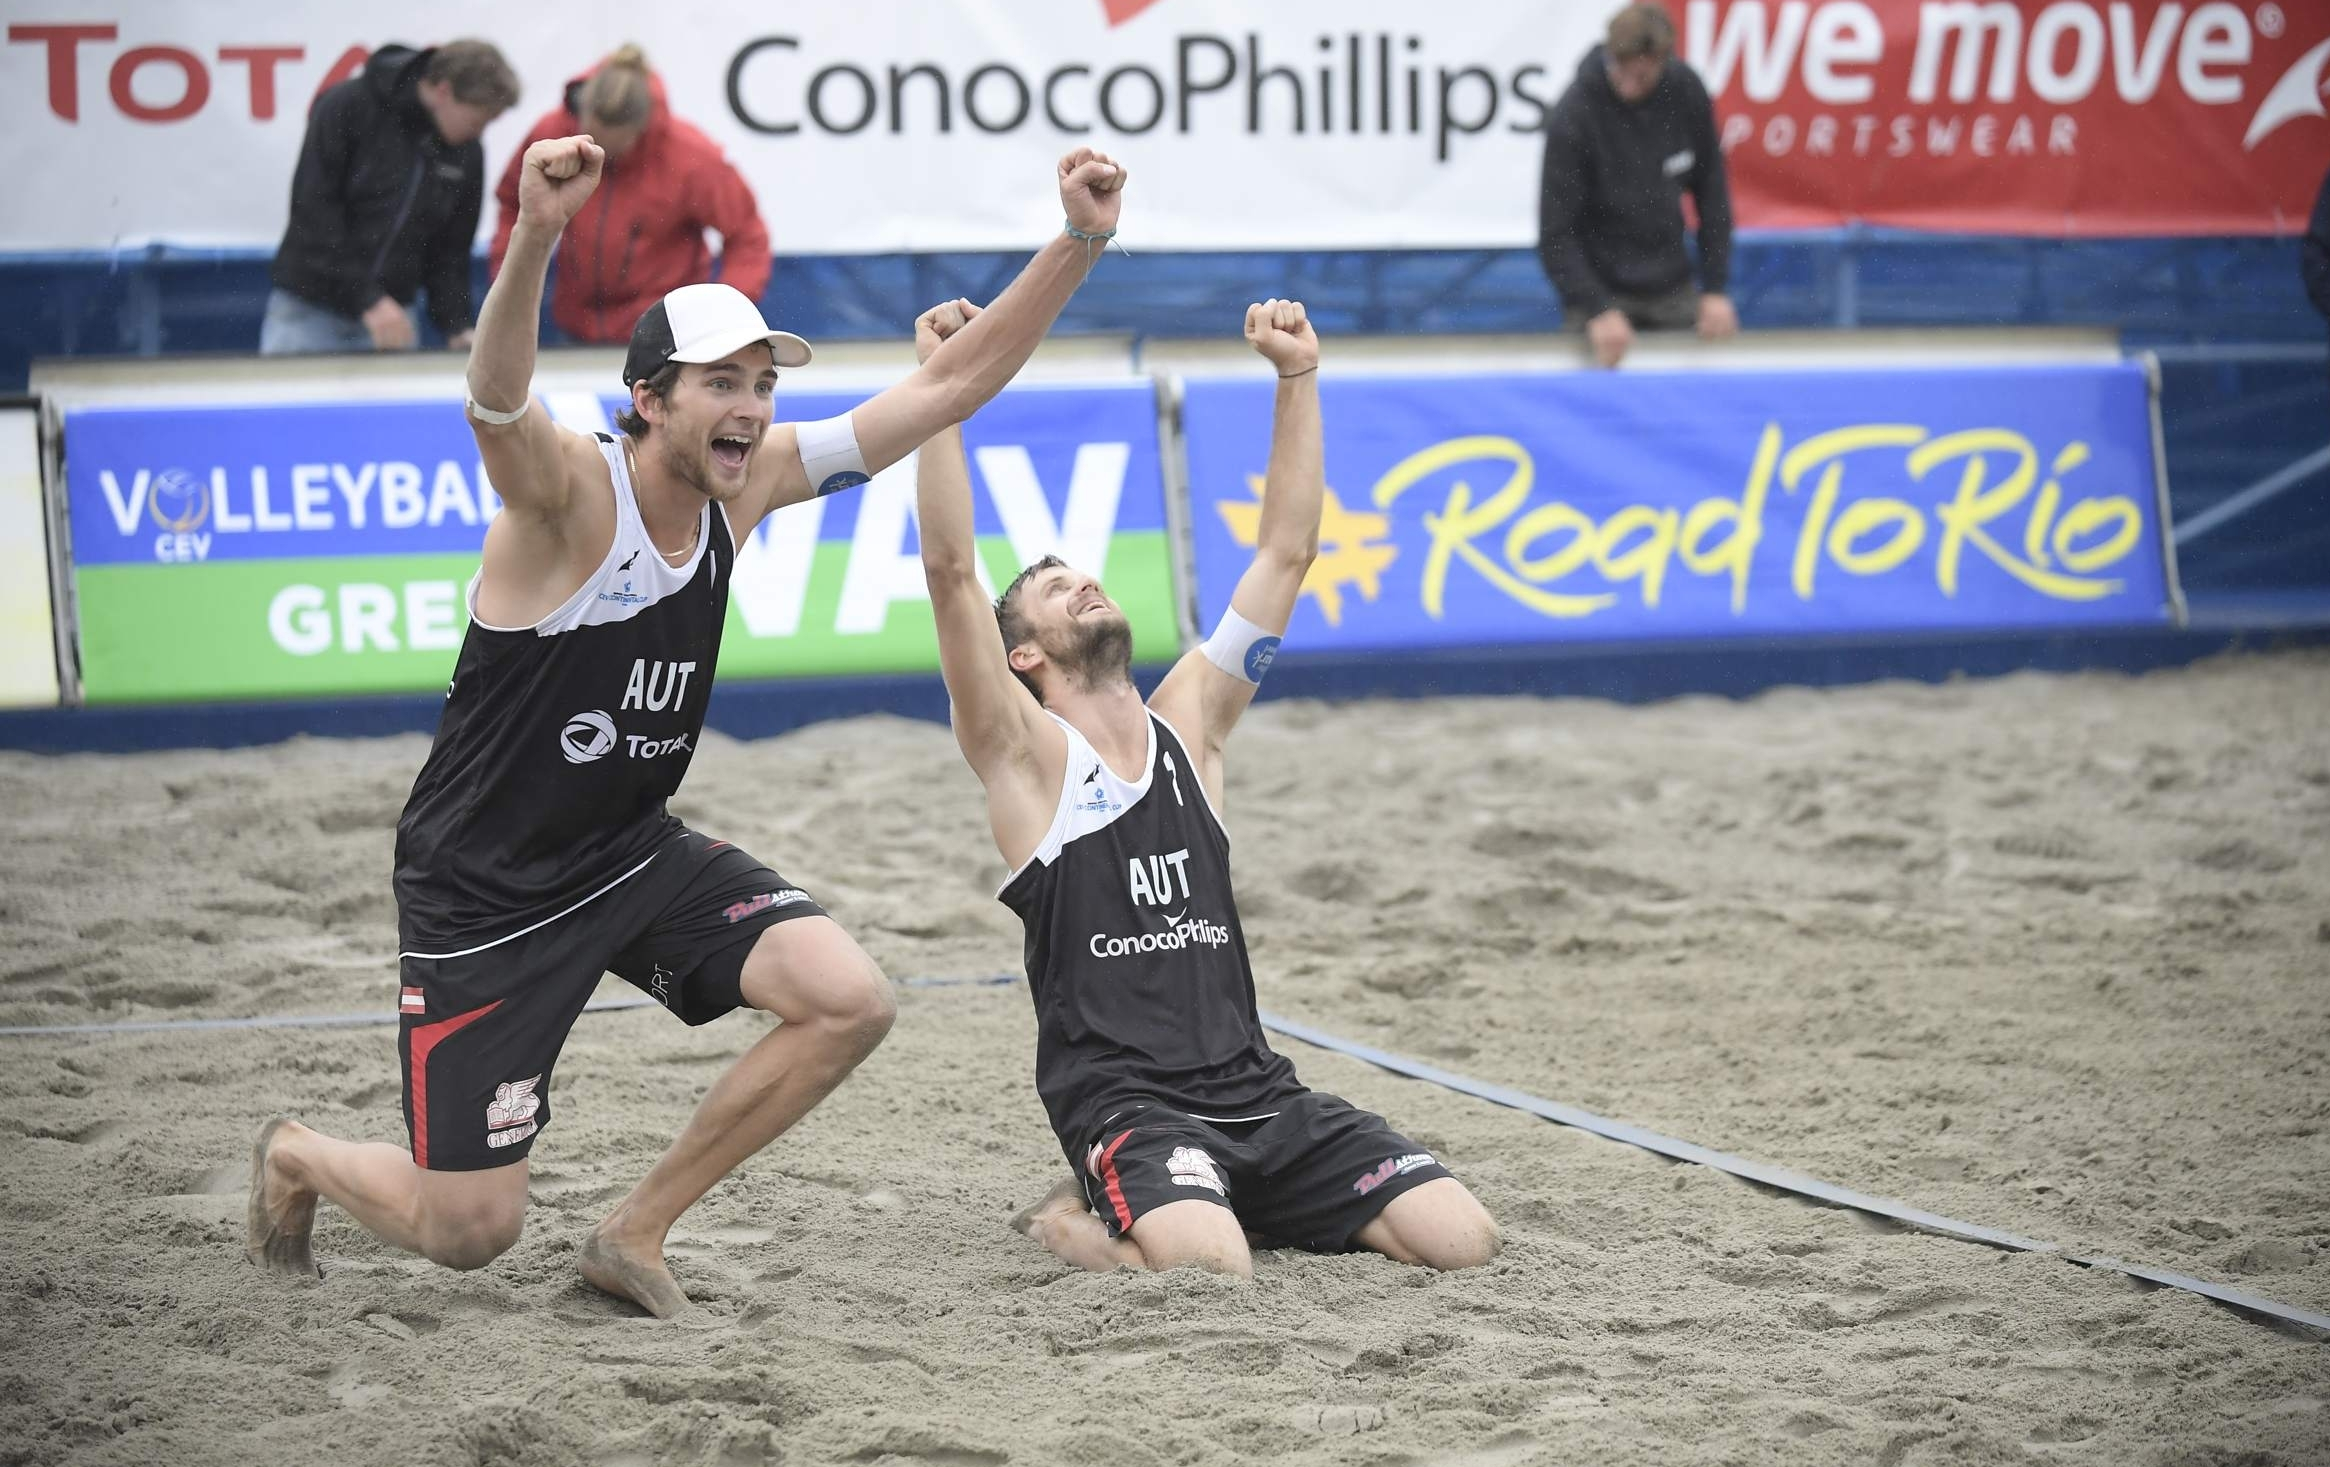 Xandi/Robin celebrate their win in Stavanger. Photocredit: CEV